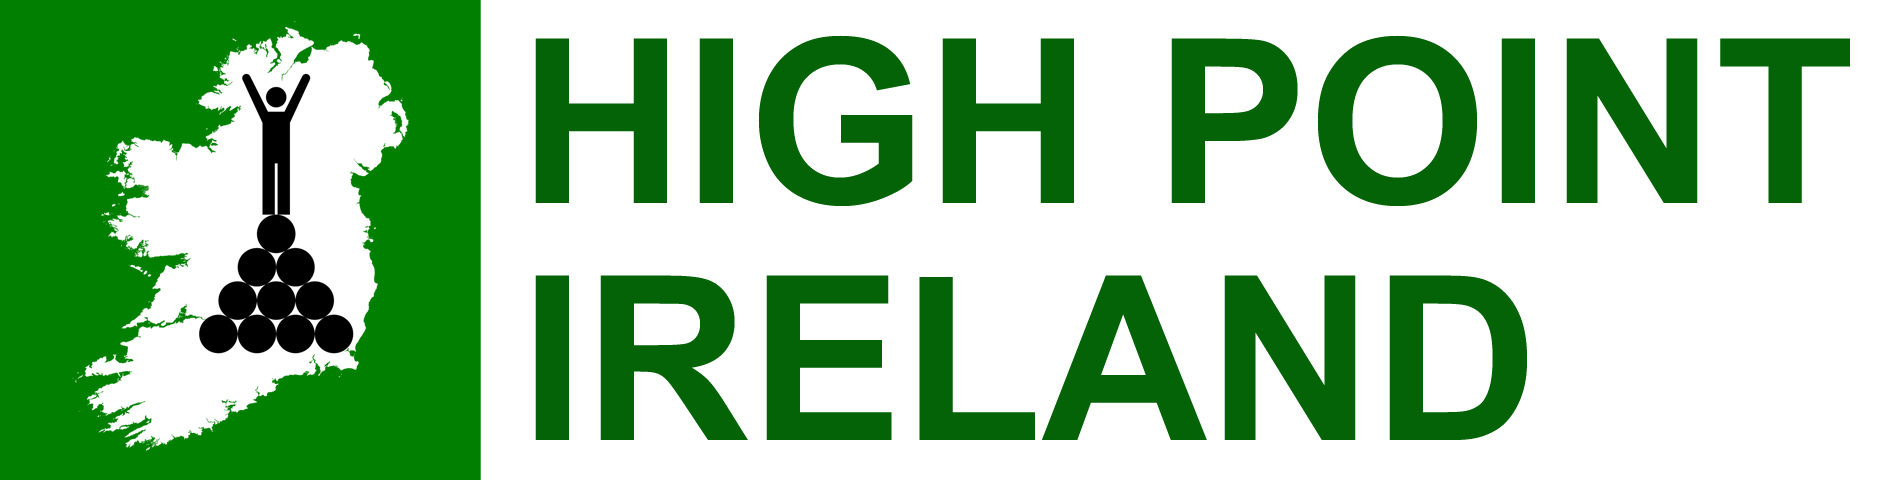 High Point Ireland – News Hub